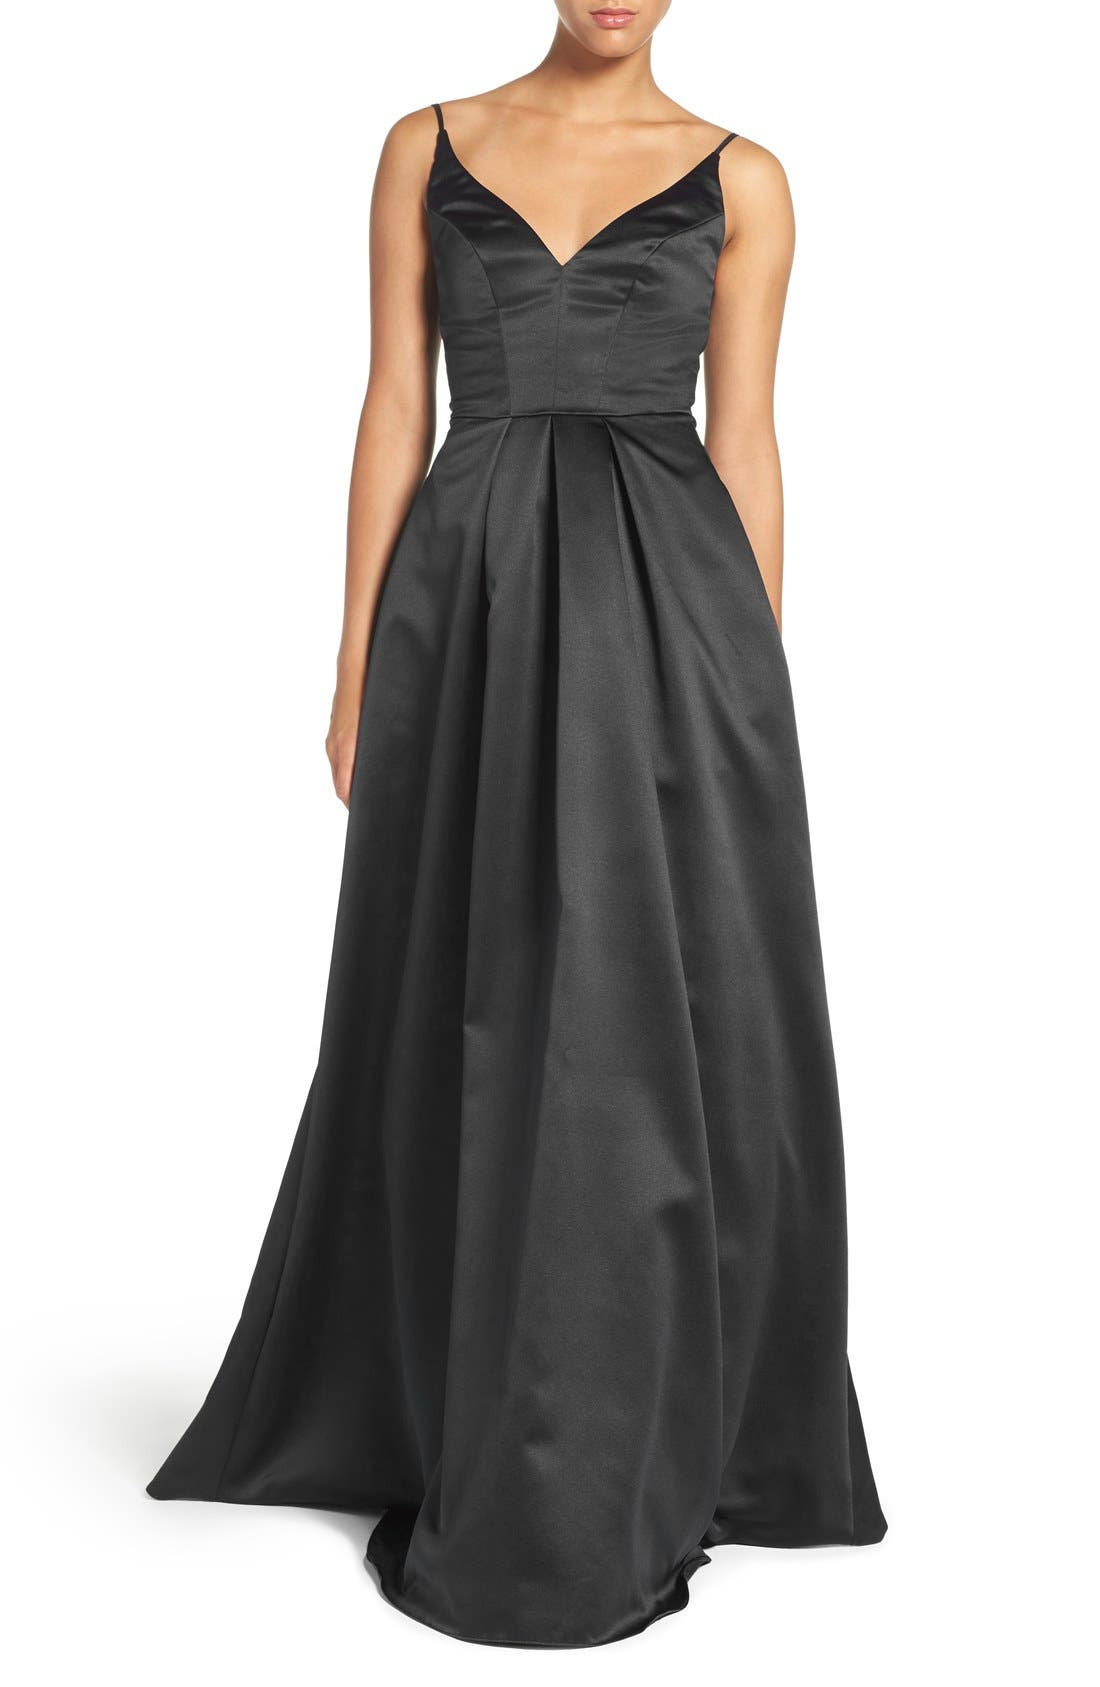 Alternate Image 1 Selected - Hayley Paige Occasions Sweetheart Neck Satin A-Line Gown